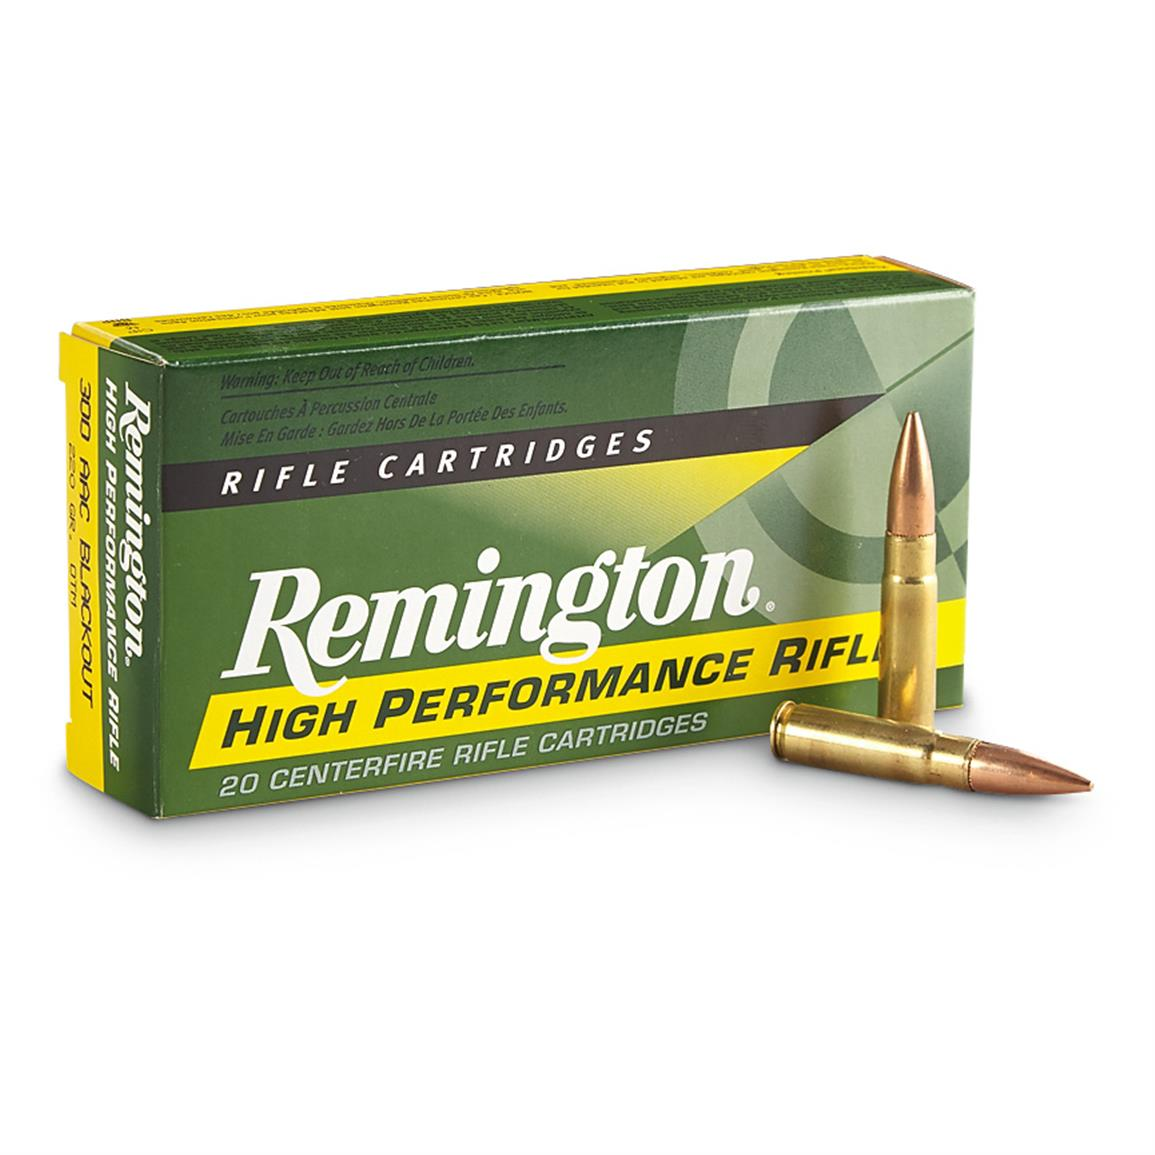 Remington, .300 AAC Blackout, 220 Grain, Open Tip Match Sub-Sonic, 20 Rounds